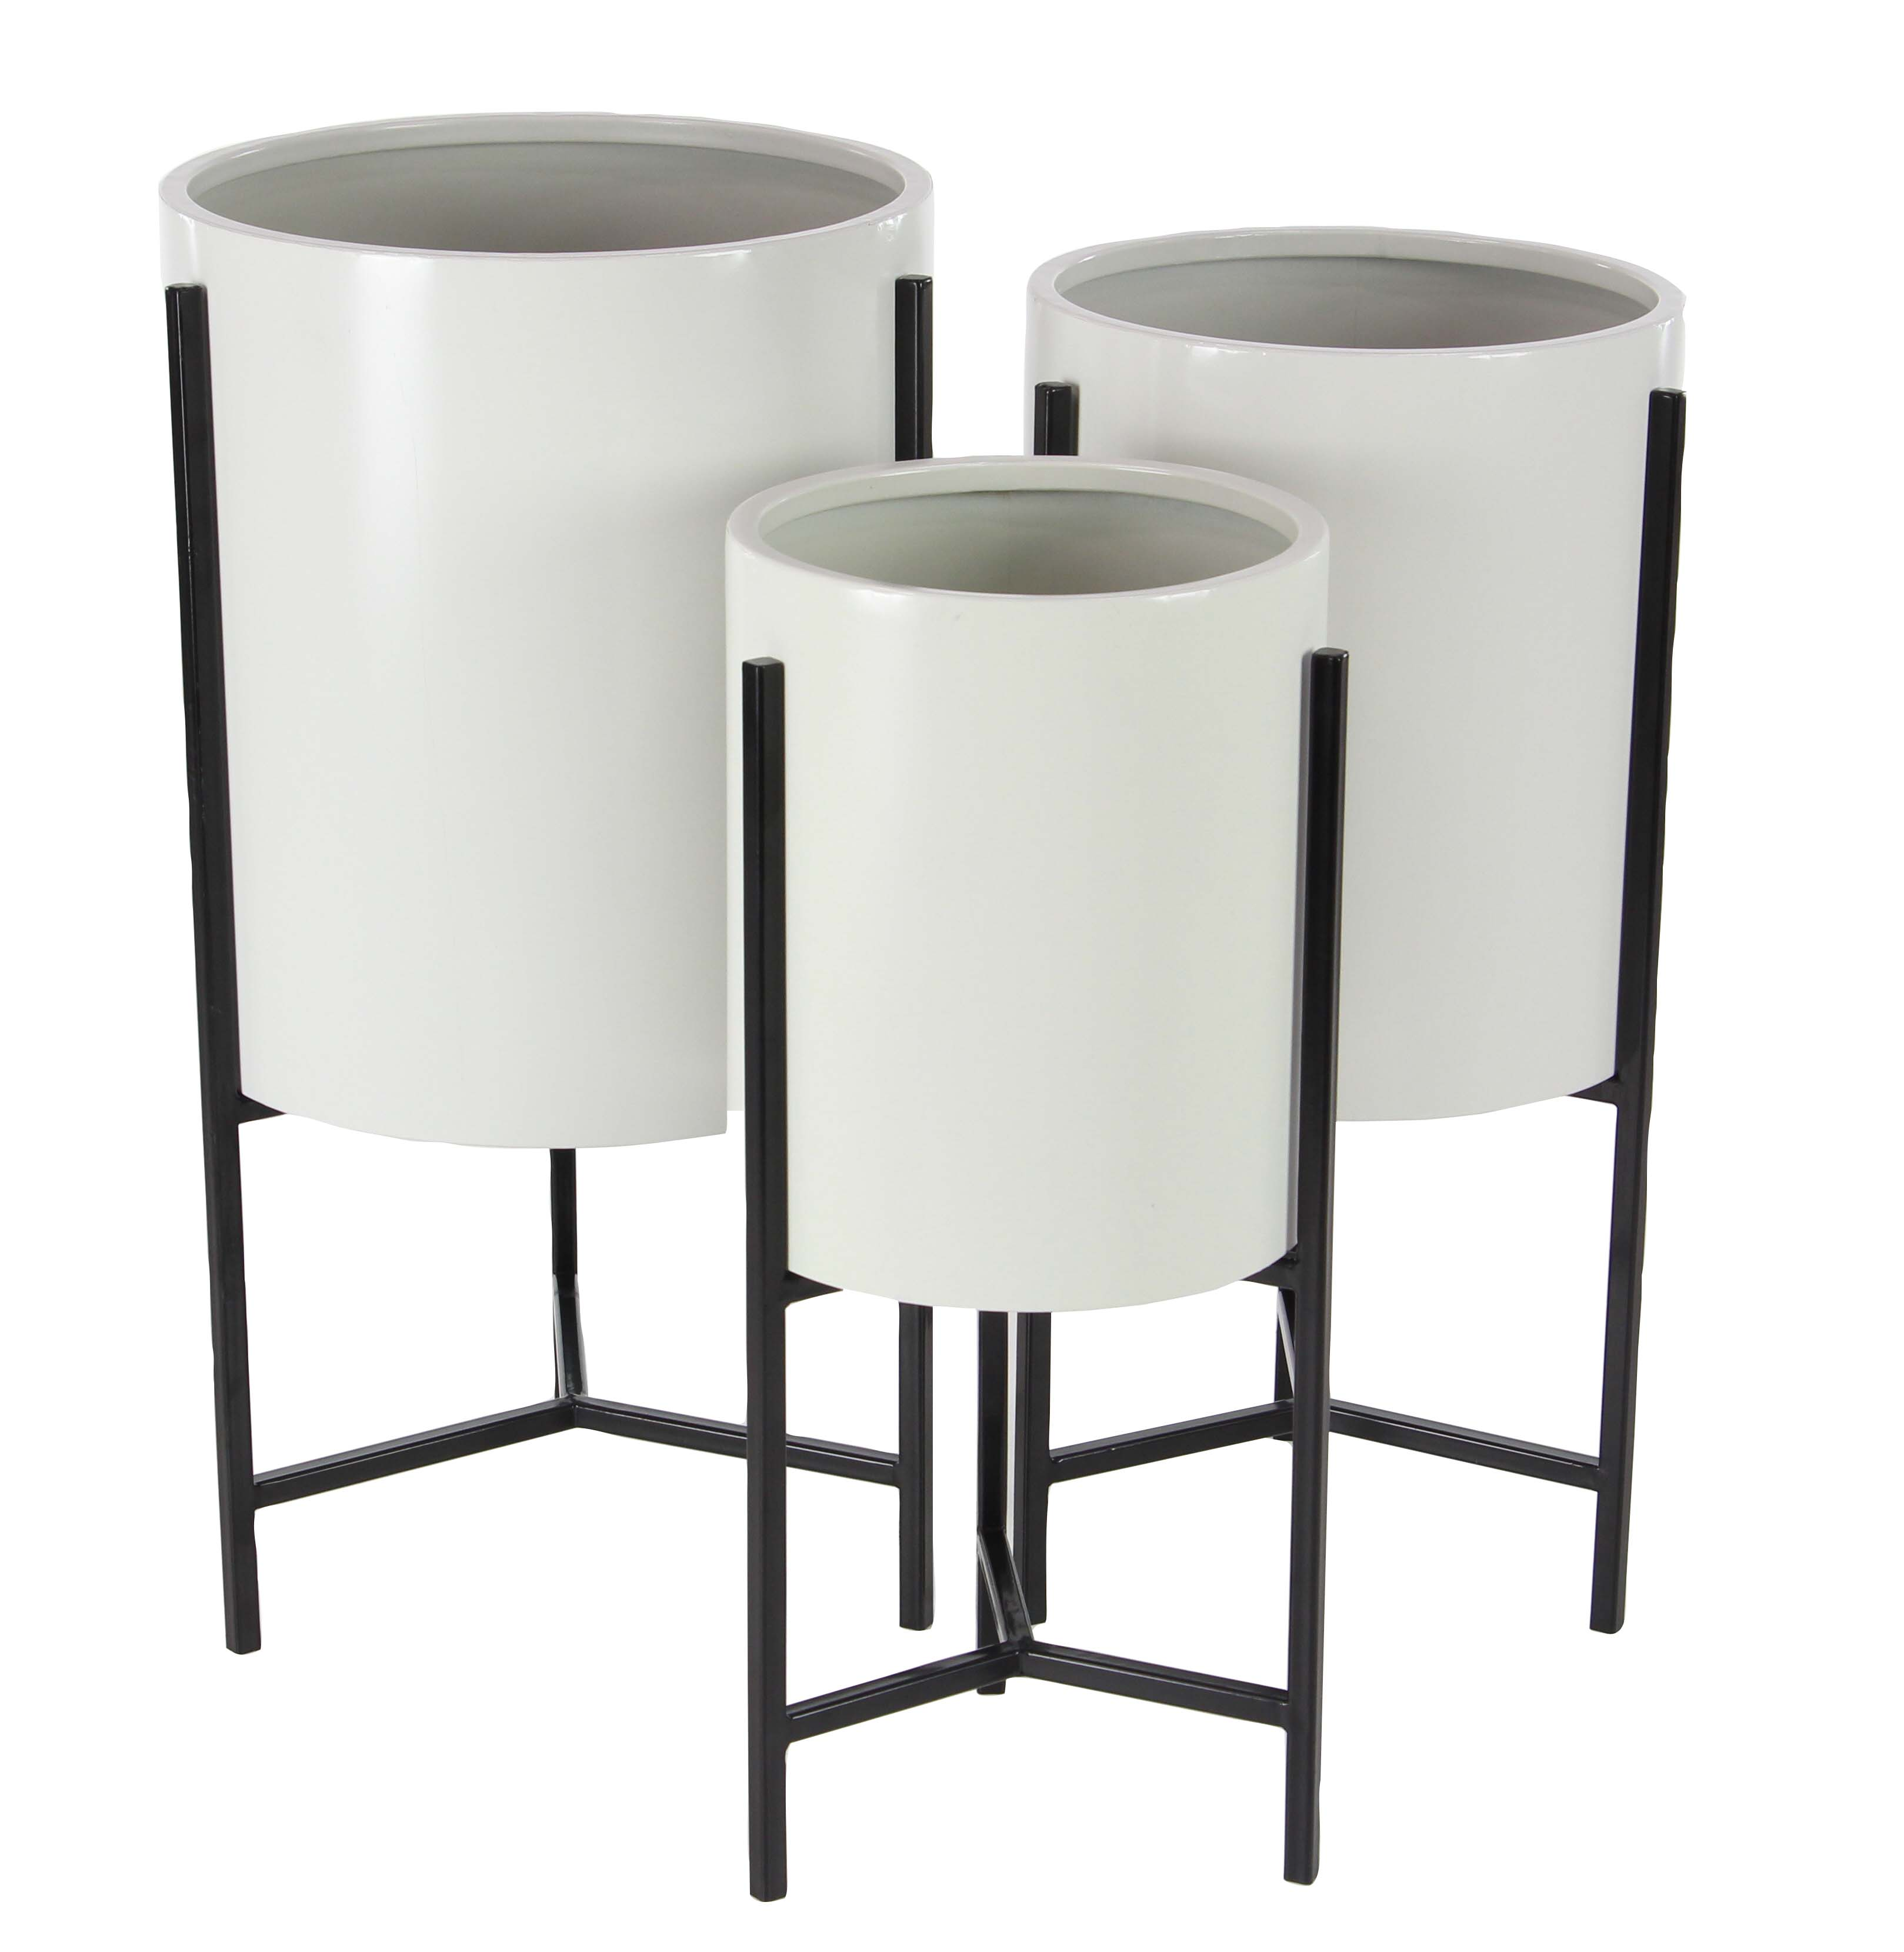 Decmode Set of 3 Modern Iron White and Black Drum Planters With Stand, White